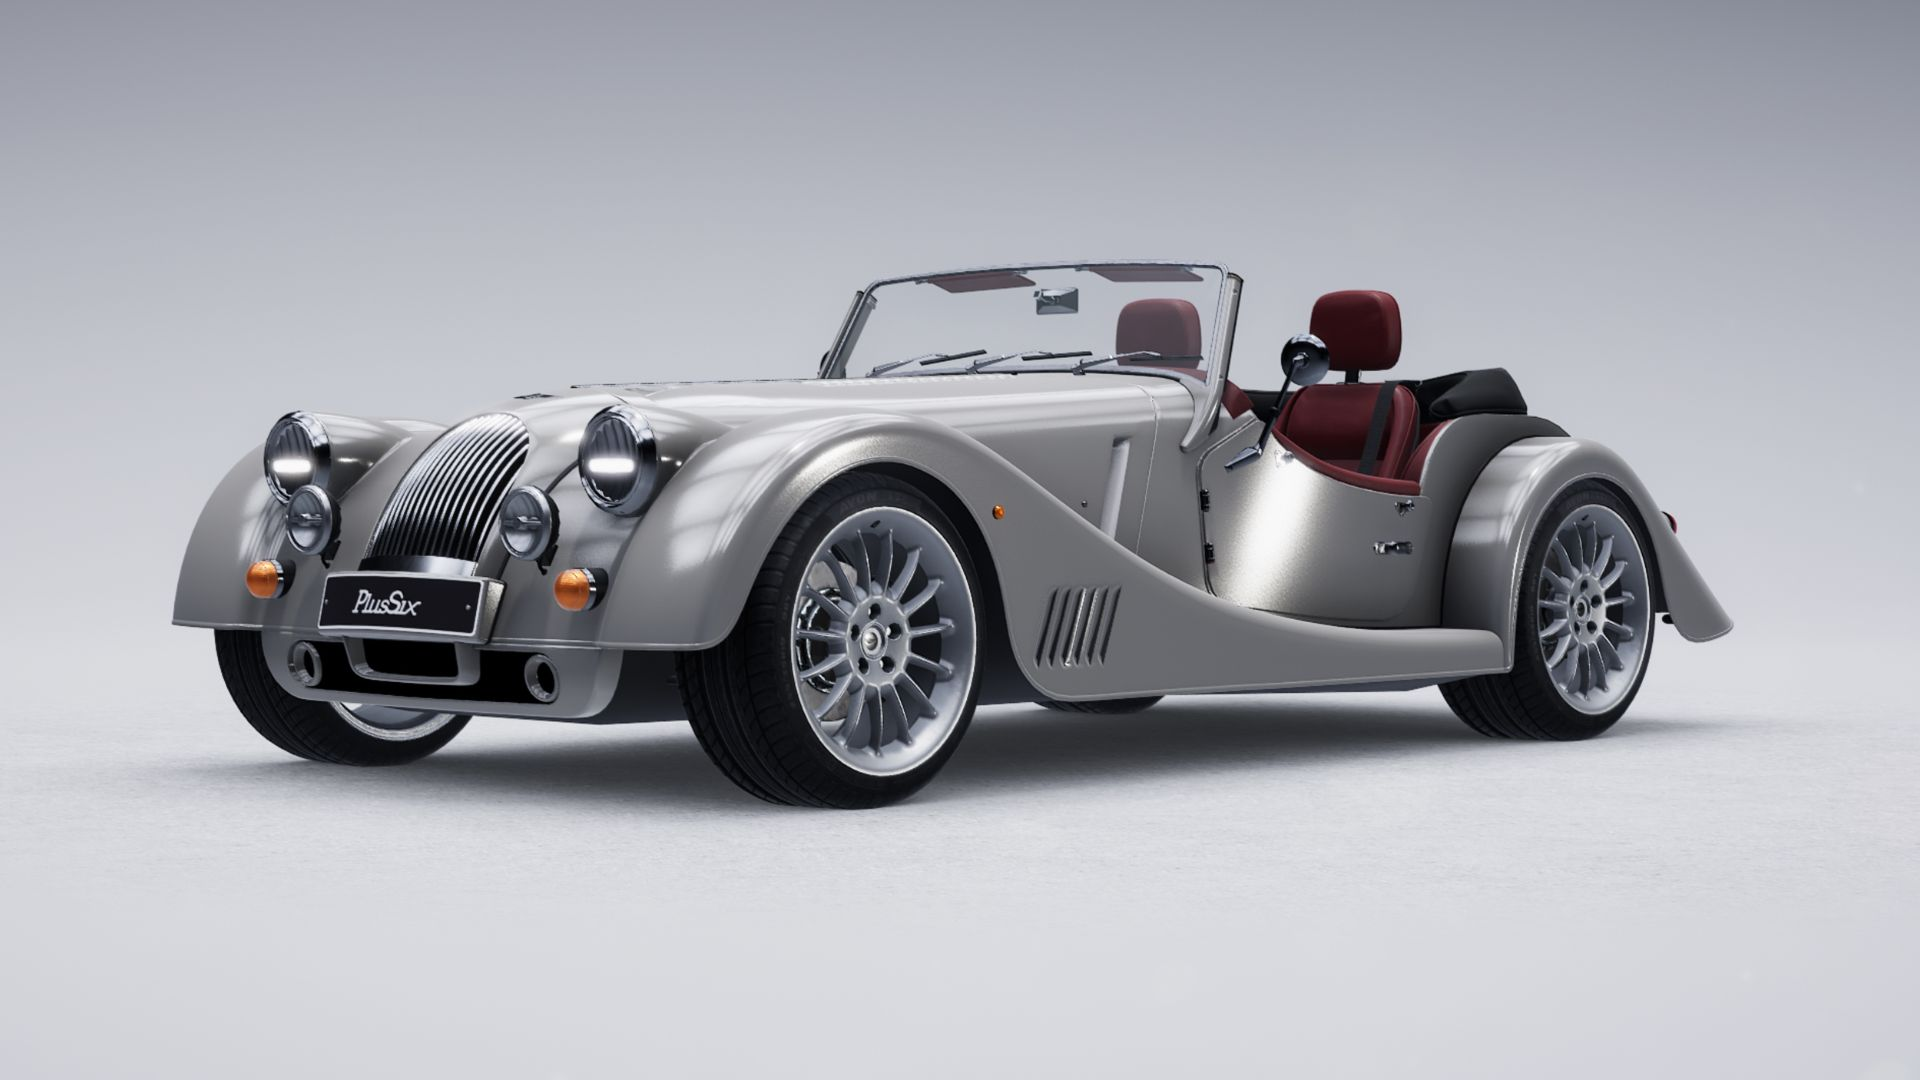 You can now design your perfect Morgan in 3D